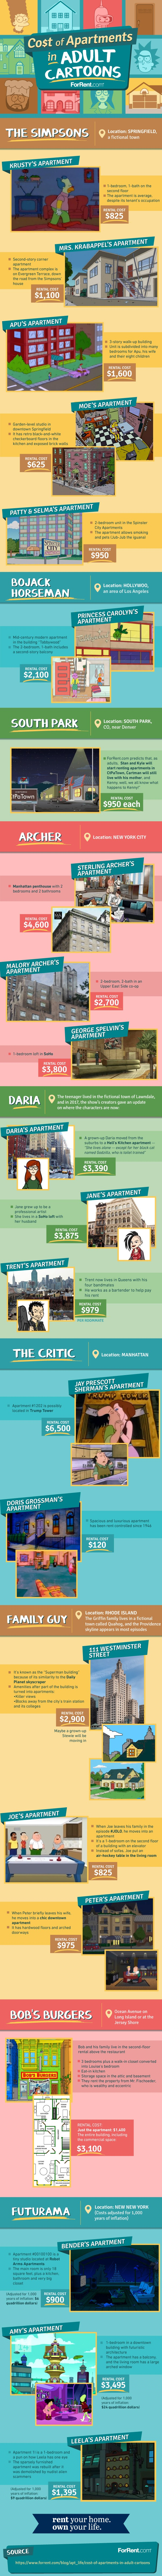 Cost of Apartments in Adult Cartoons #infographic